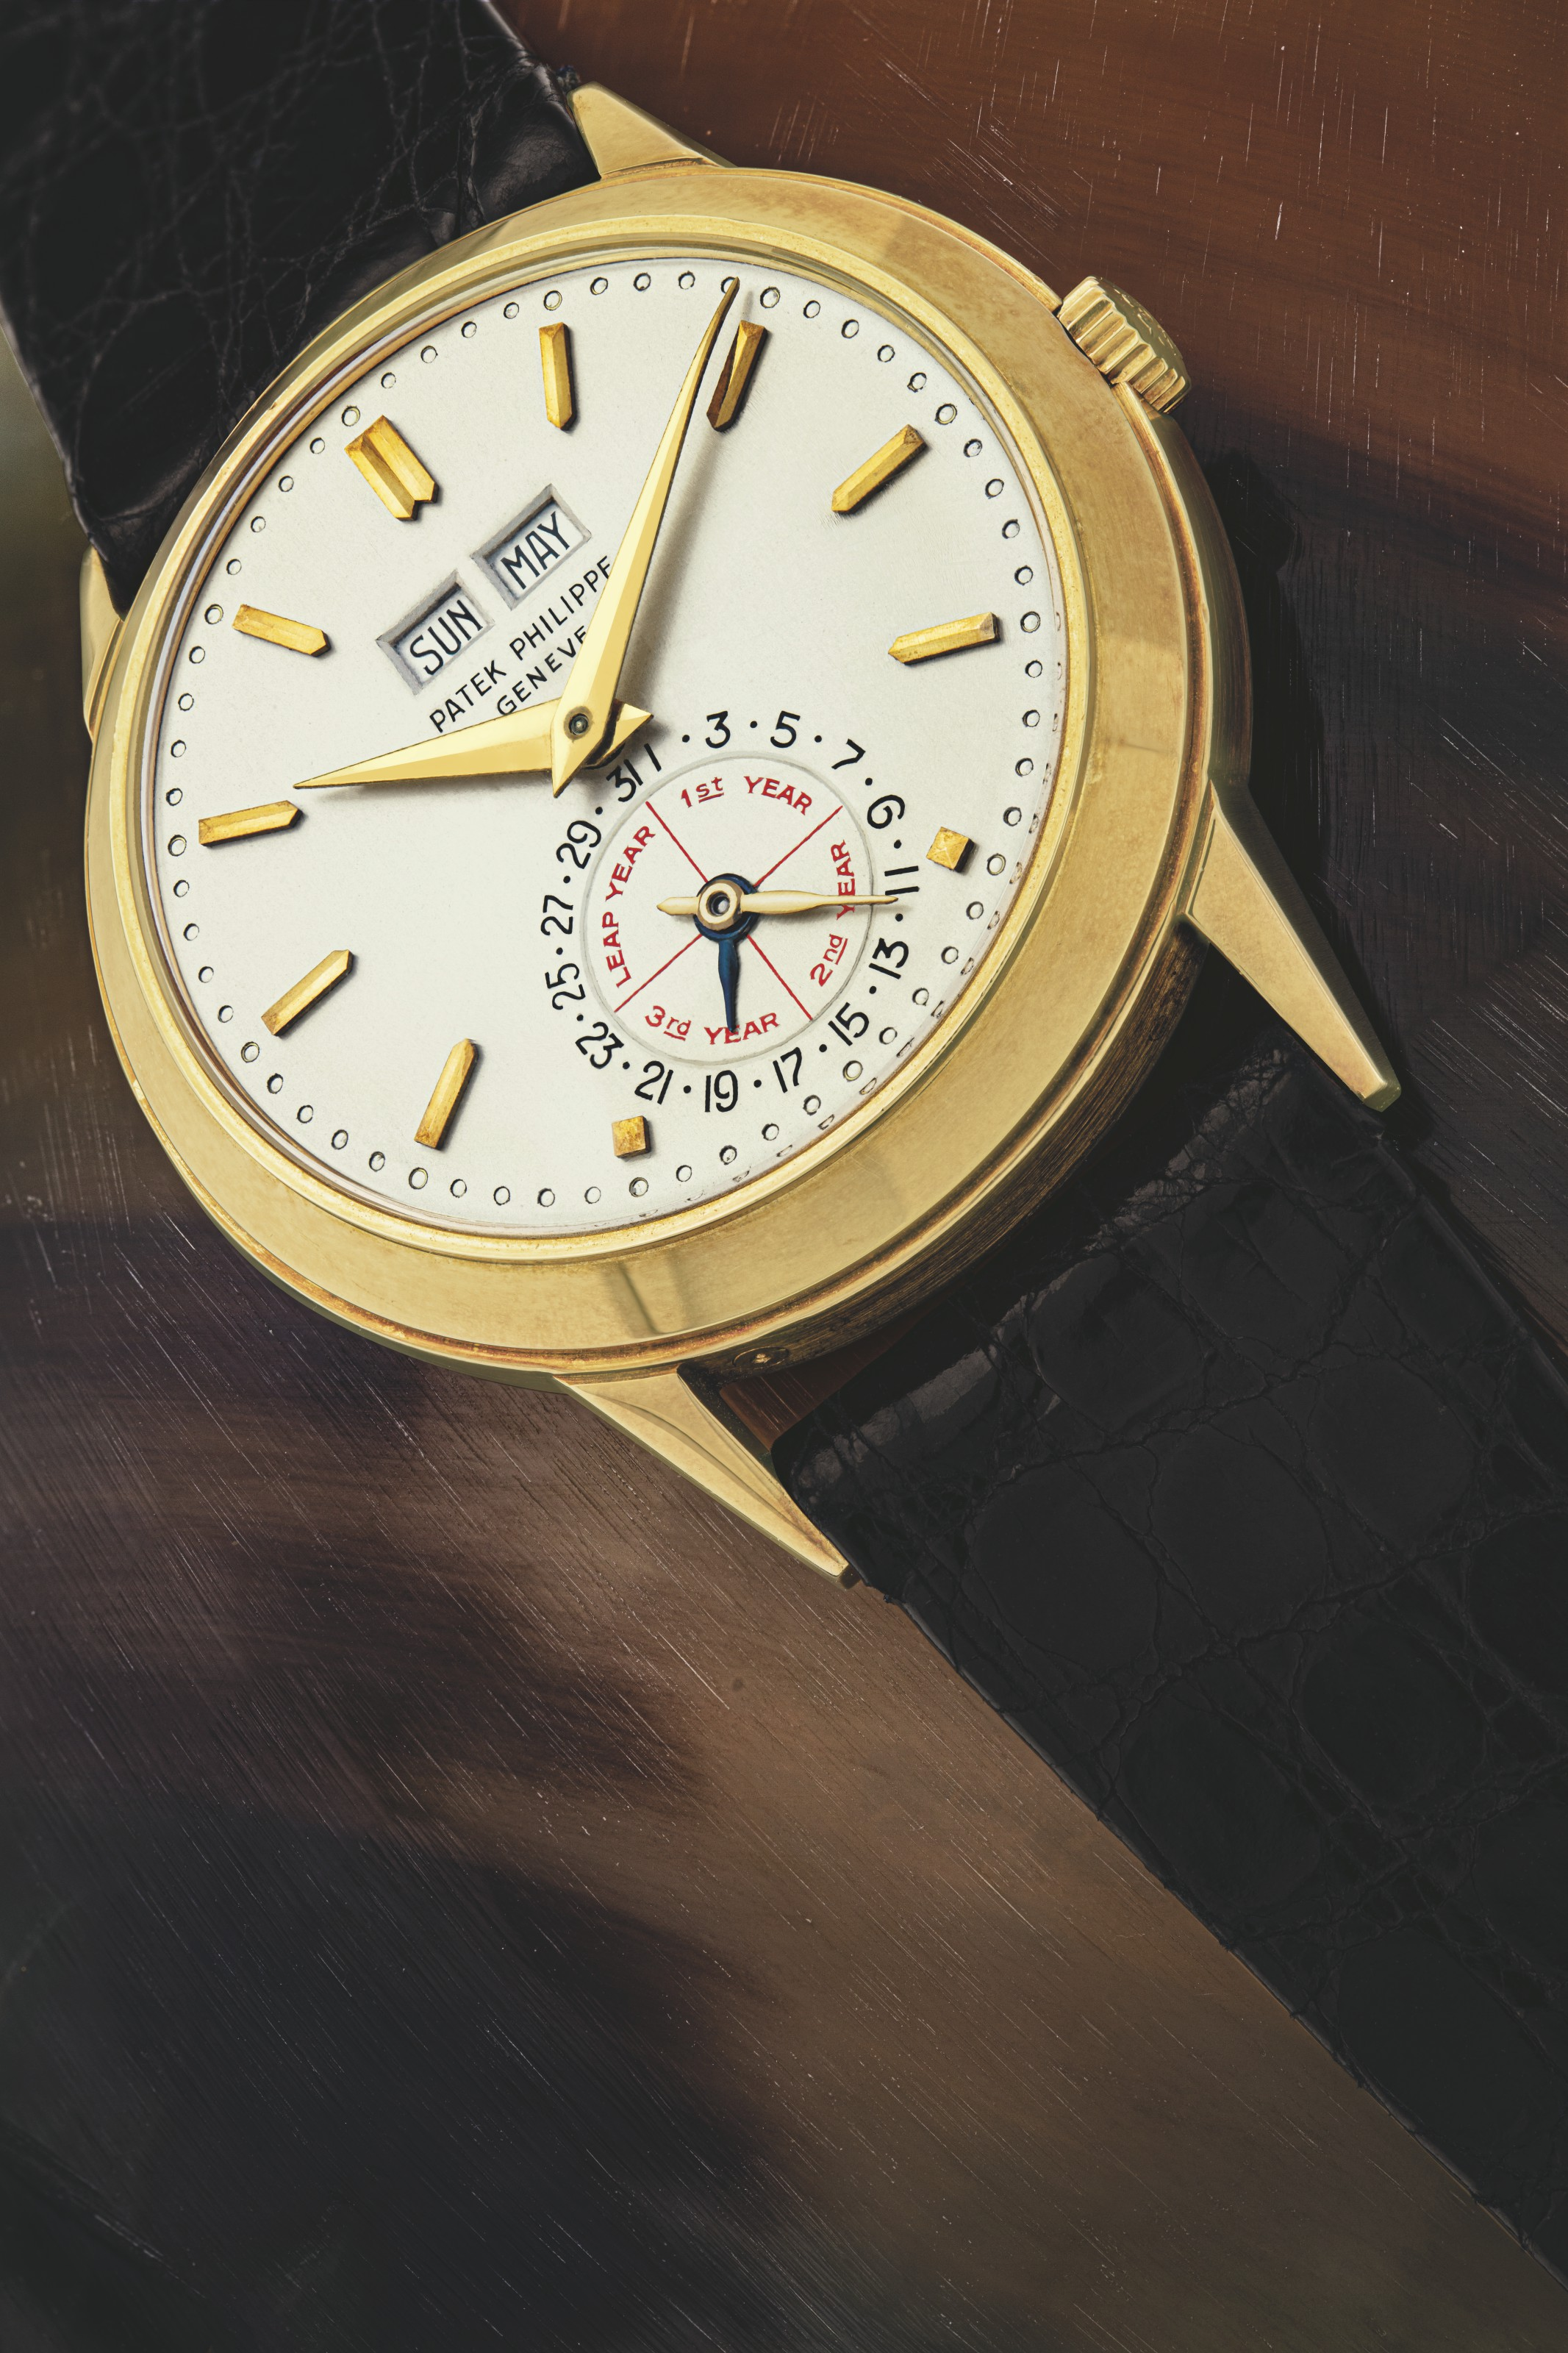 """PATEK PHILIPPE. A UNIQUE, EXCEPTIONAL AND HISTORICALLY HIGHLY IMPORTANT 18K GOLD AUTOMATIC PERPETUAL CALENDAR WRISTWATCH WITH ENGLISH CALENDAR, LEAP YEAR INDICATION AND """"NO MOON"""""""